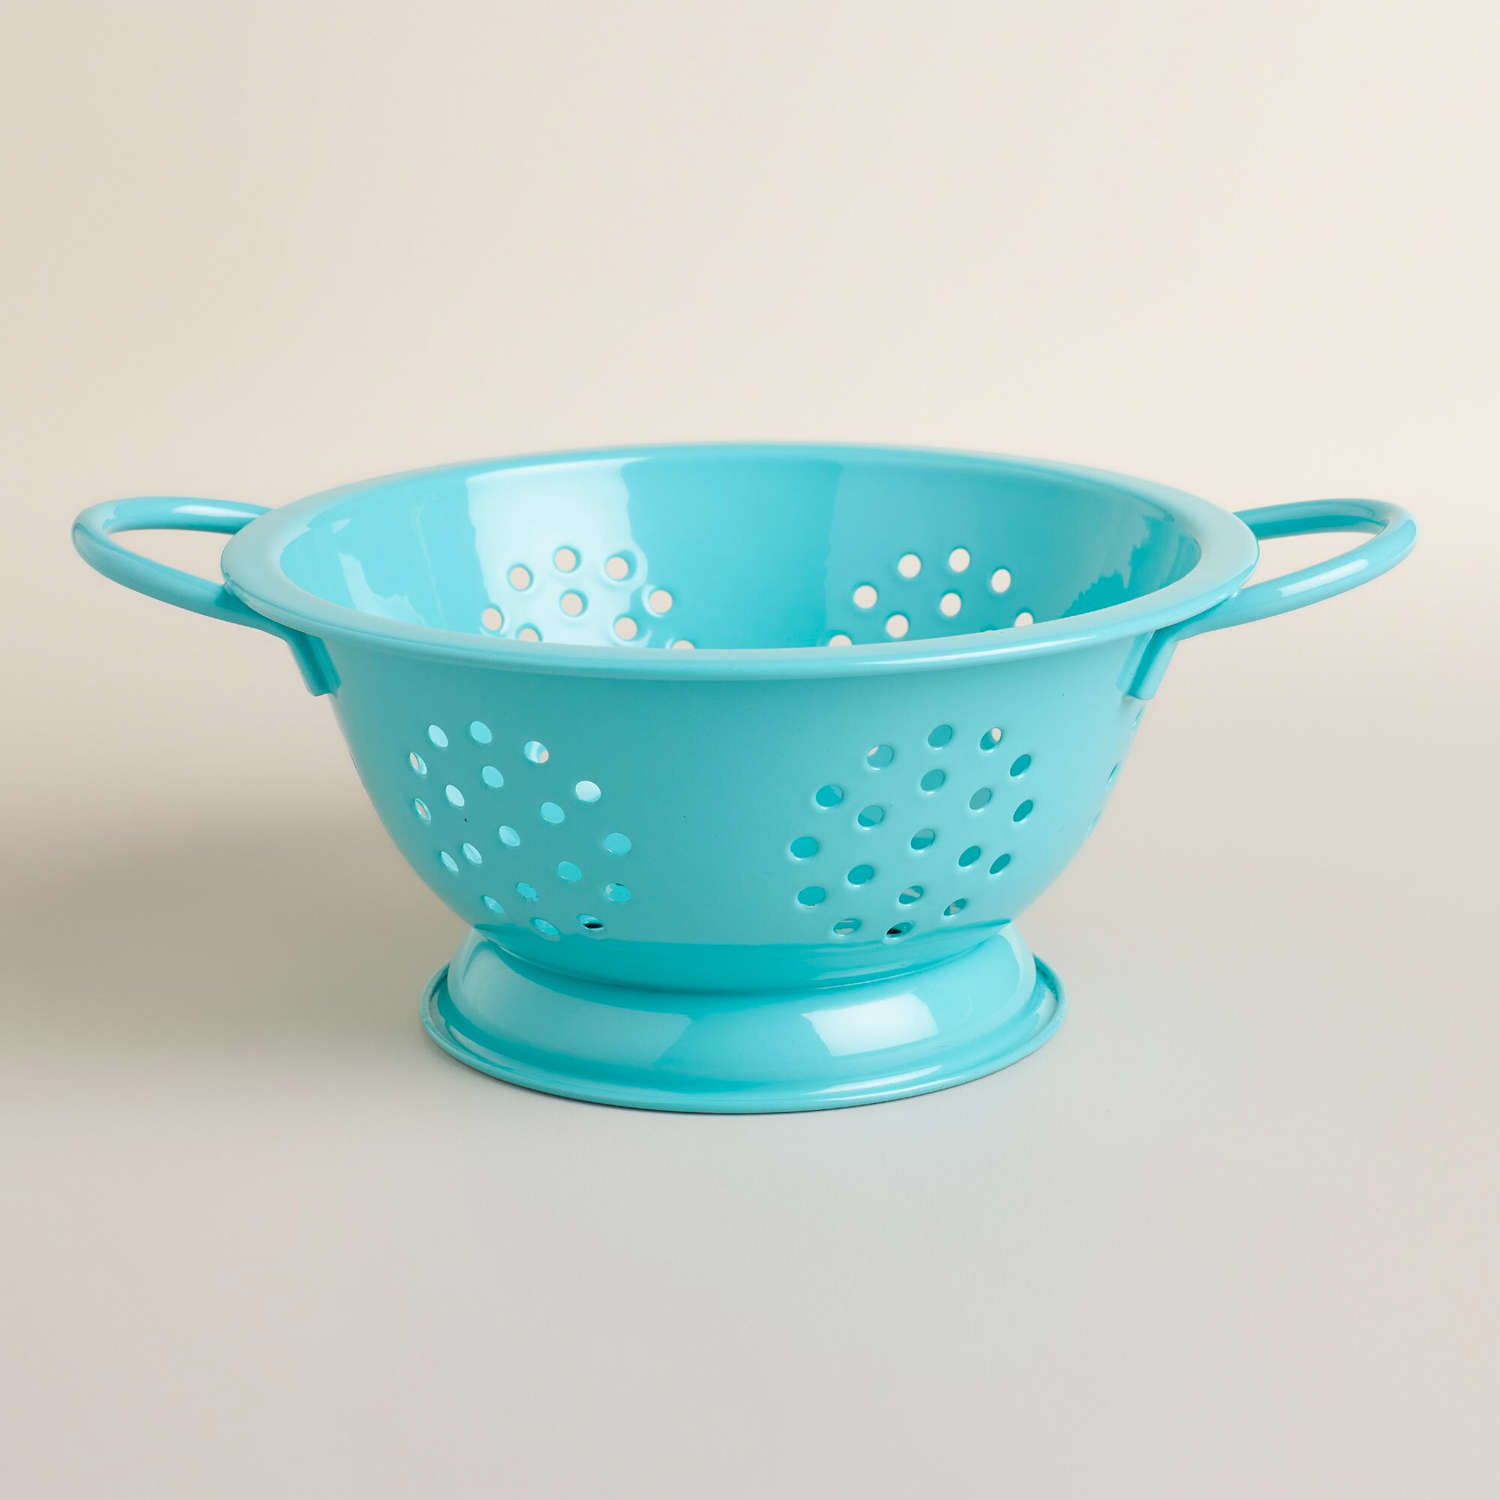 Our favorite mini colander